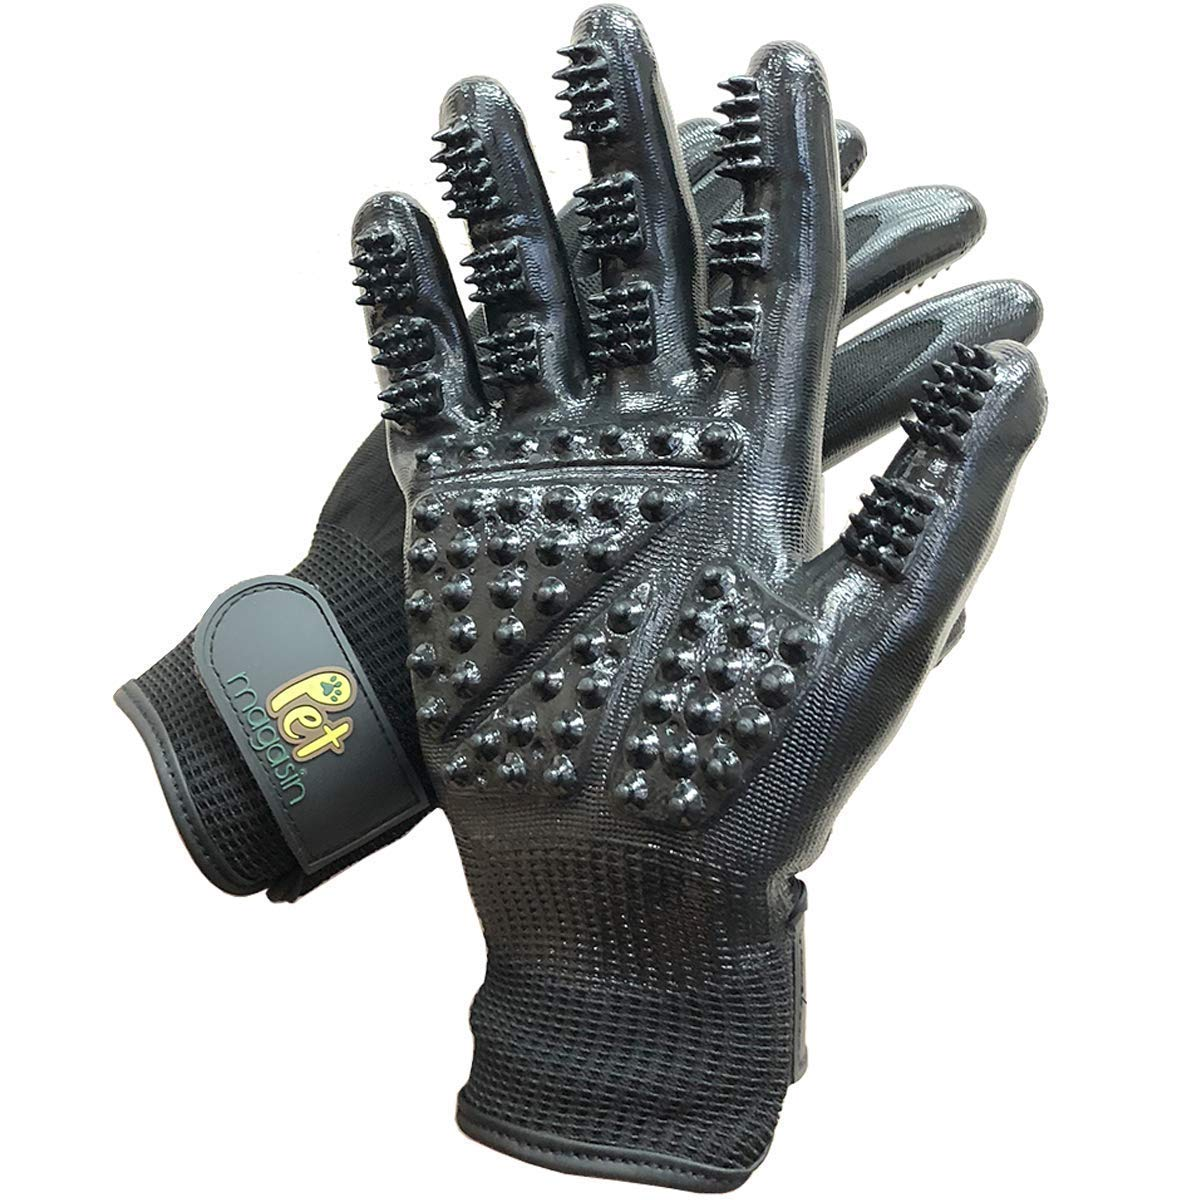 Effective Patented Grooming Gloves One Size Fit All Works For Dogs, Horses, Cats and Other Animals (1-pair): Beauty